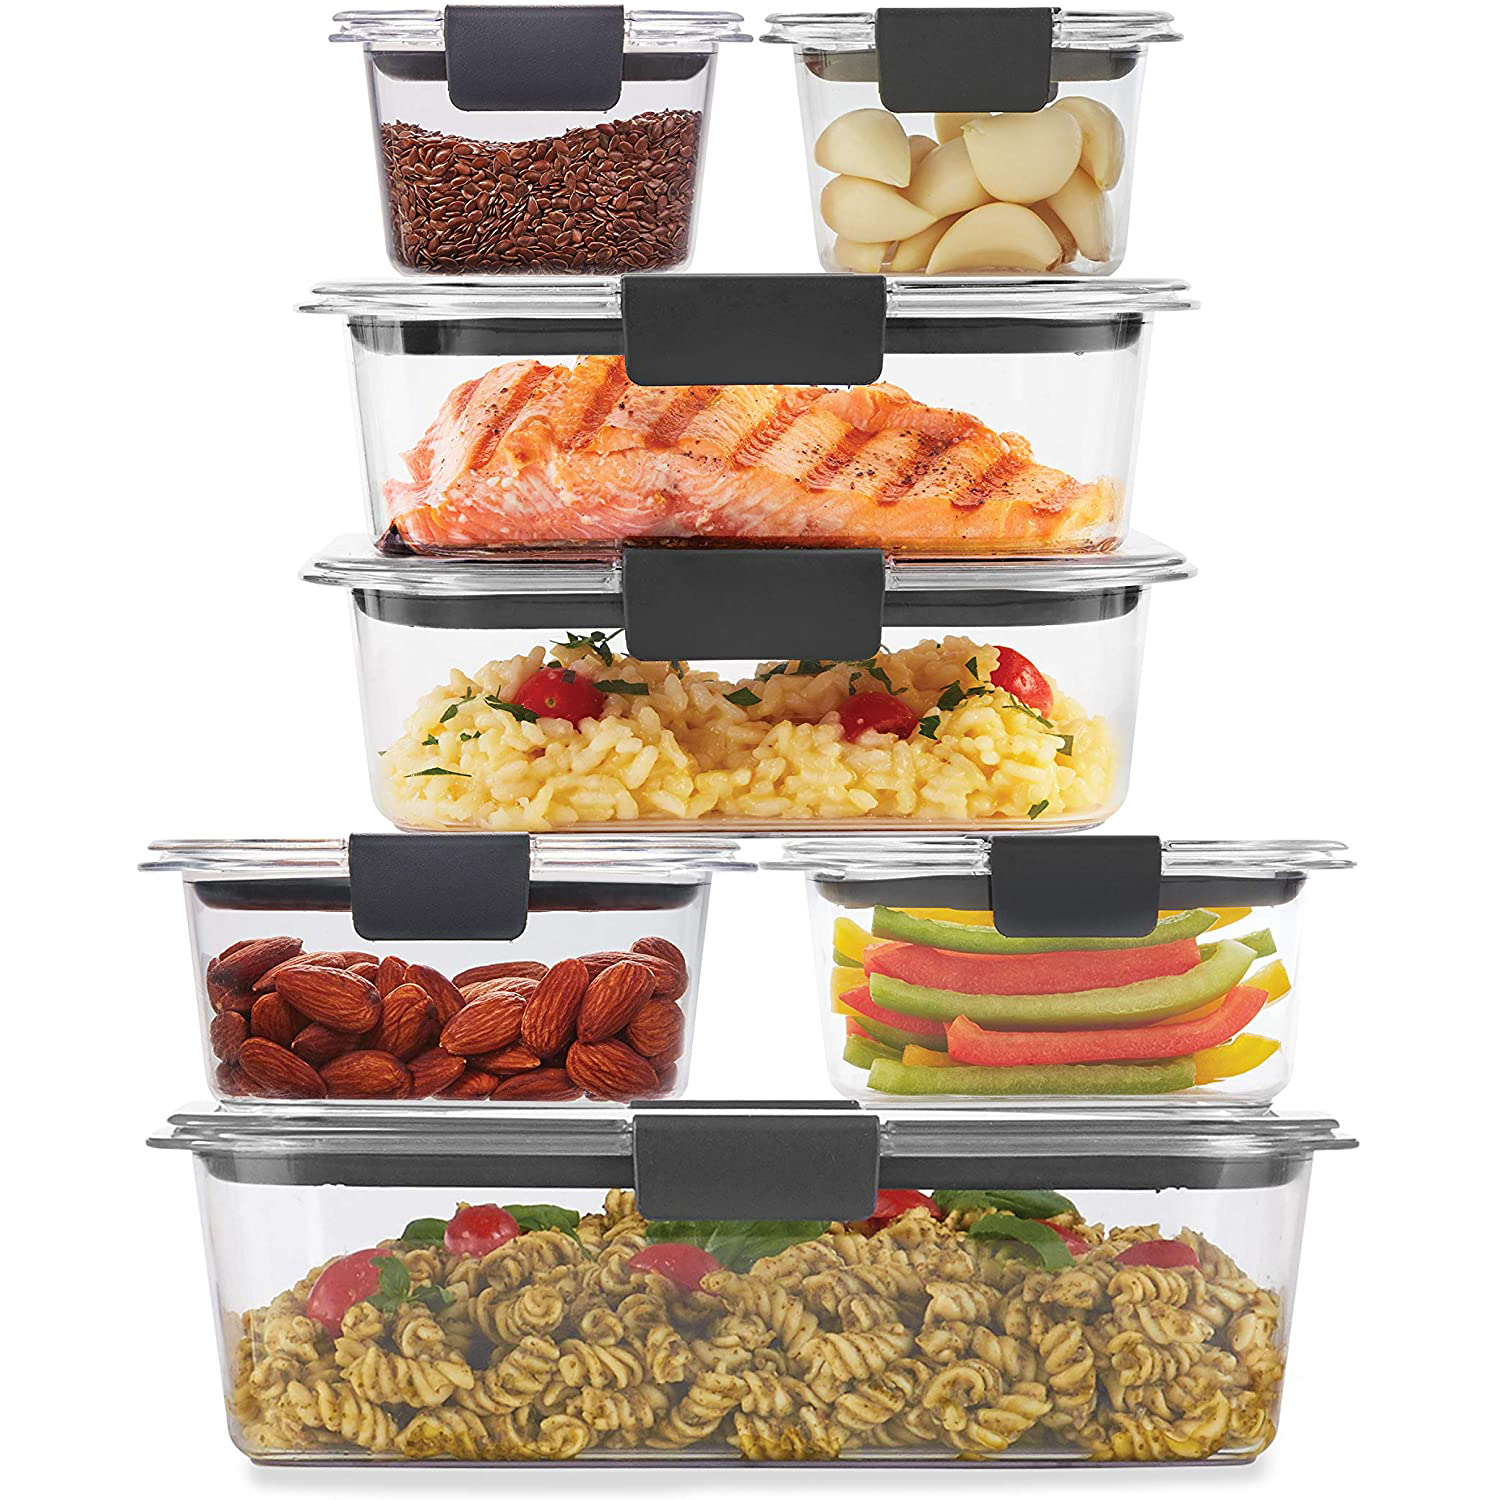 amazon prime day 2021 rubbermaid containers